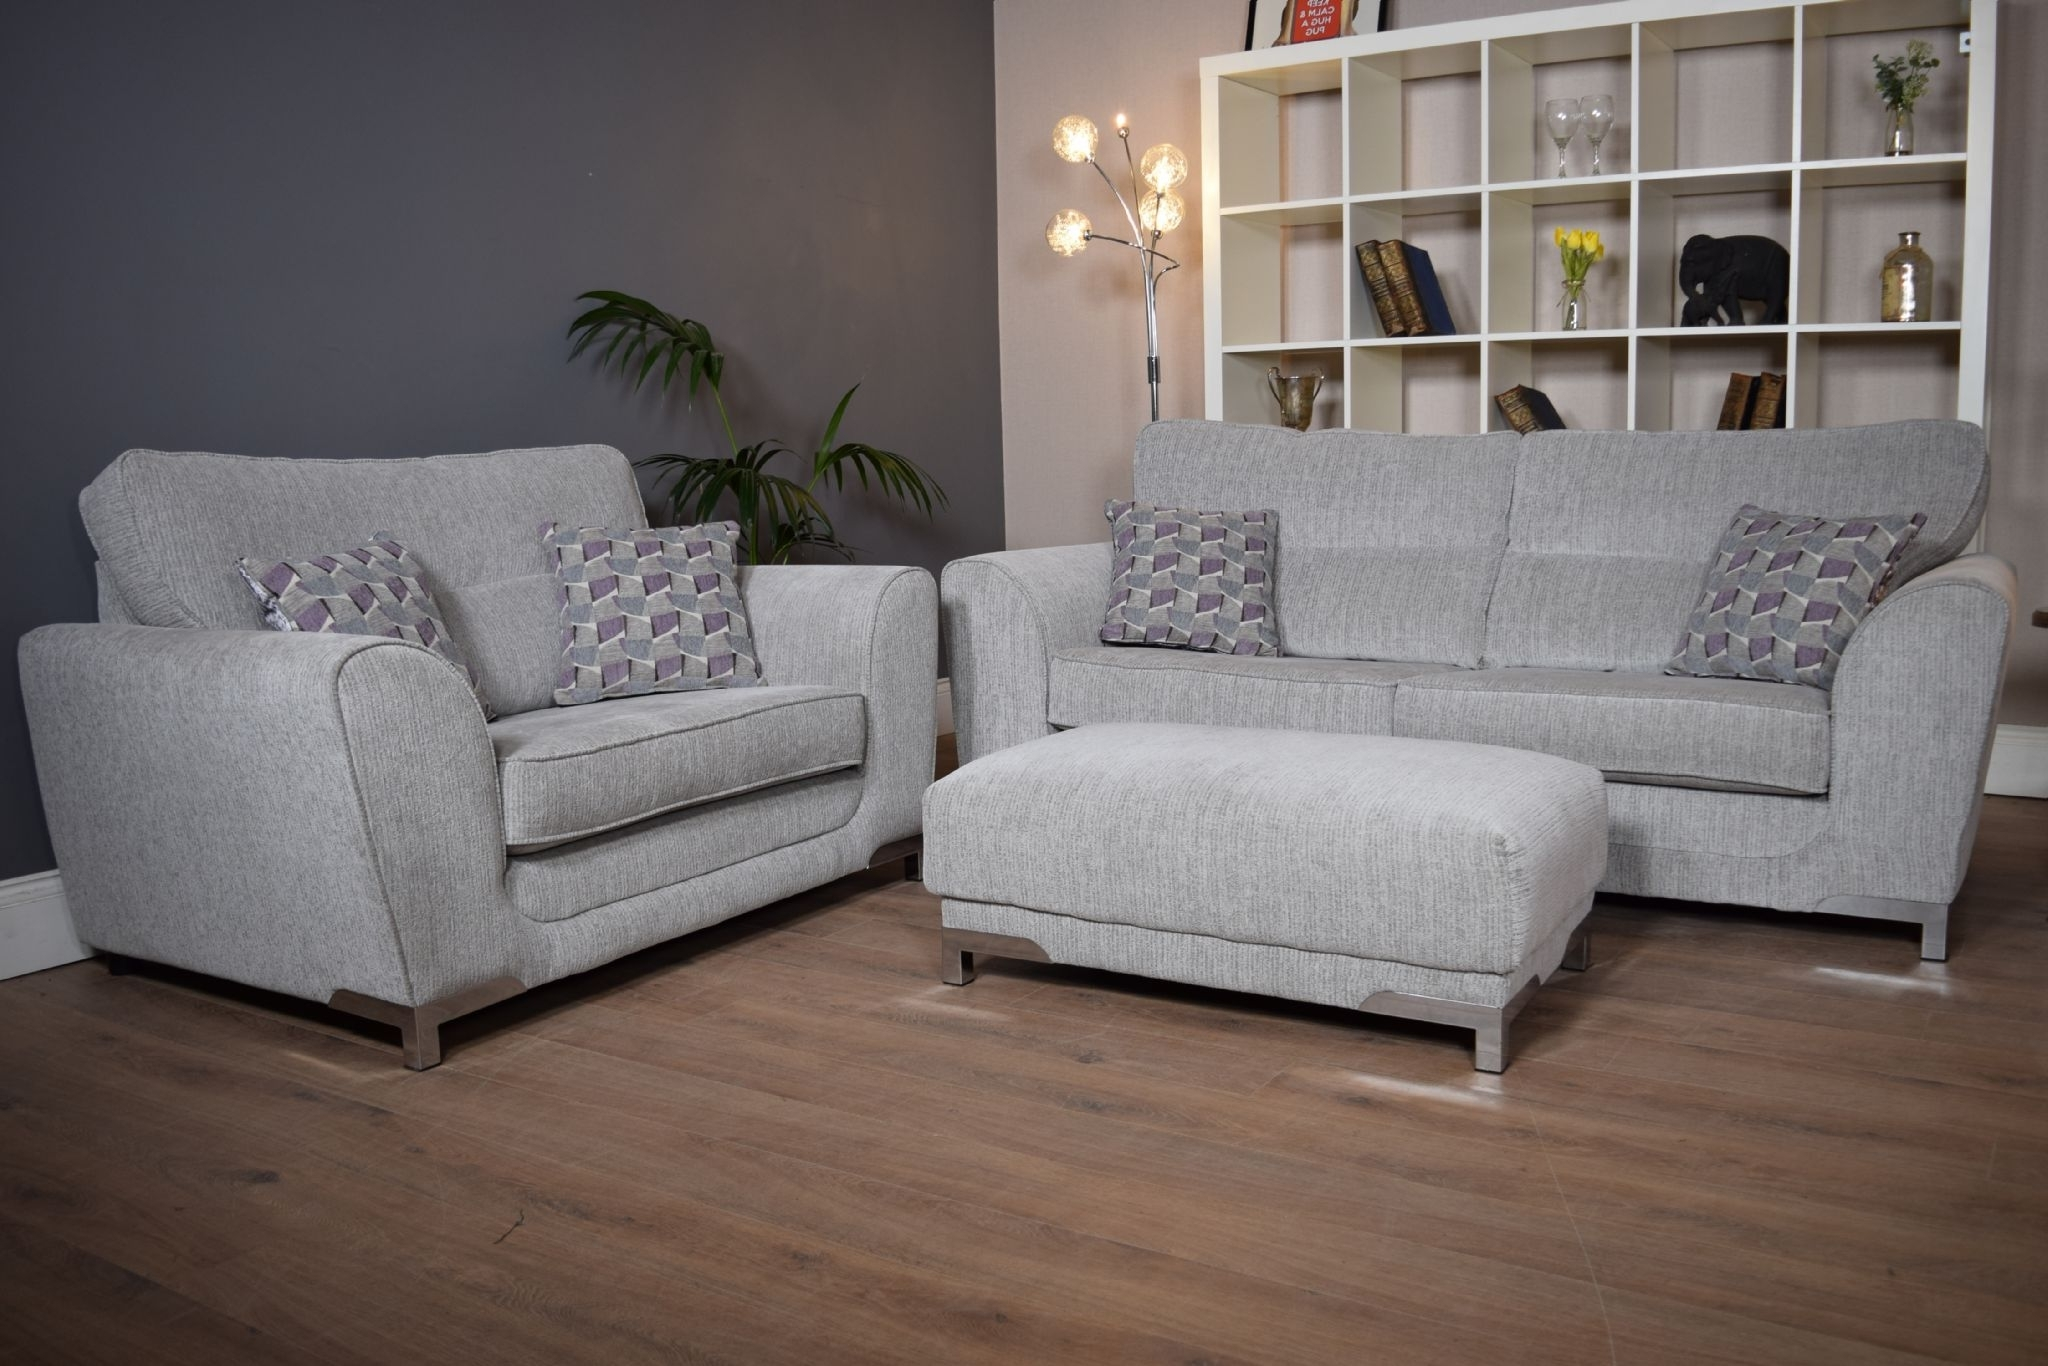 Set Nikki 3 Seater Sofa Cuddle Chair & Footstool Suite Set – Light With Regard To Widely Used 3 Seater Sofas And Cuddle Chairs (View 18 of 20)